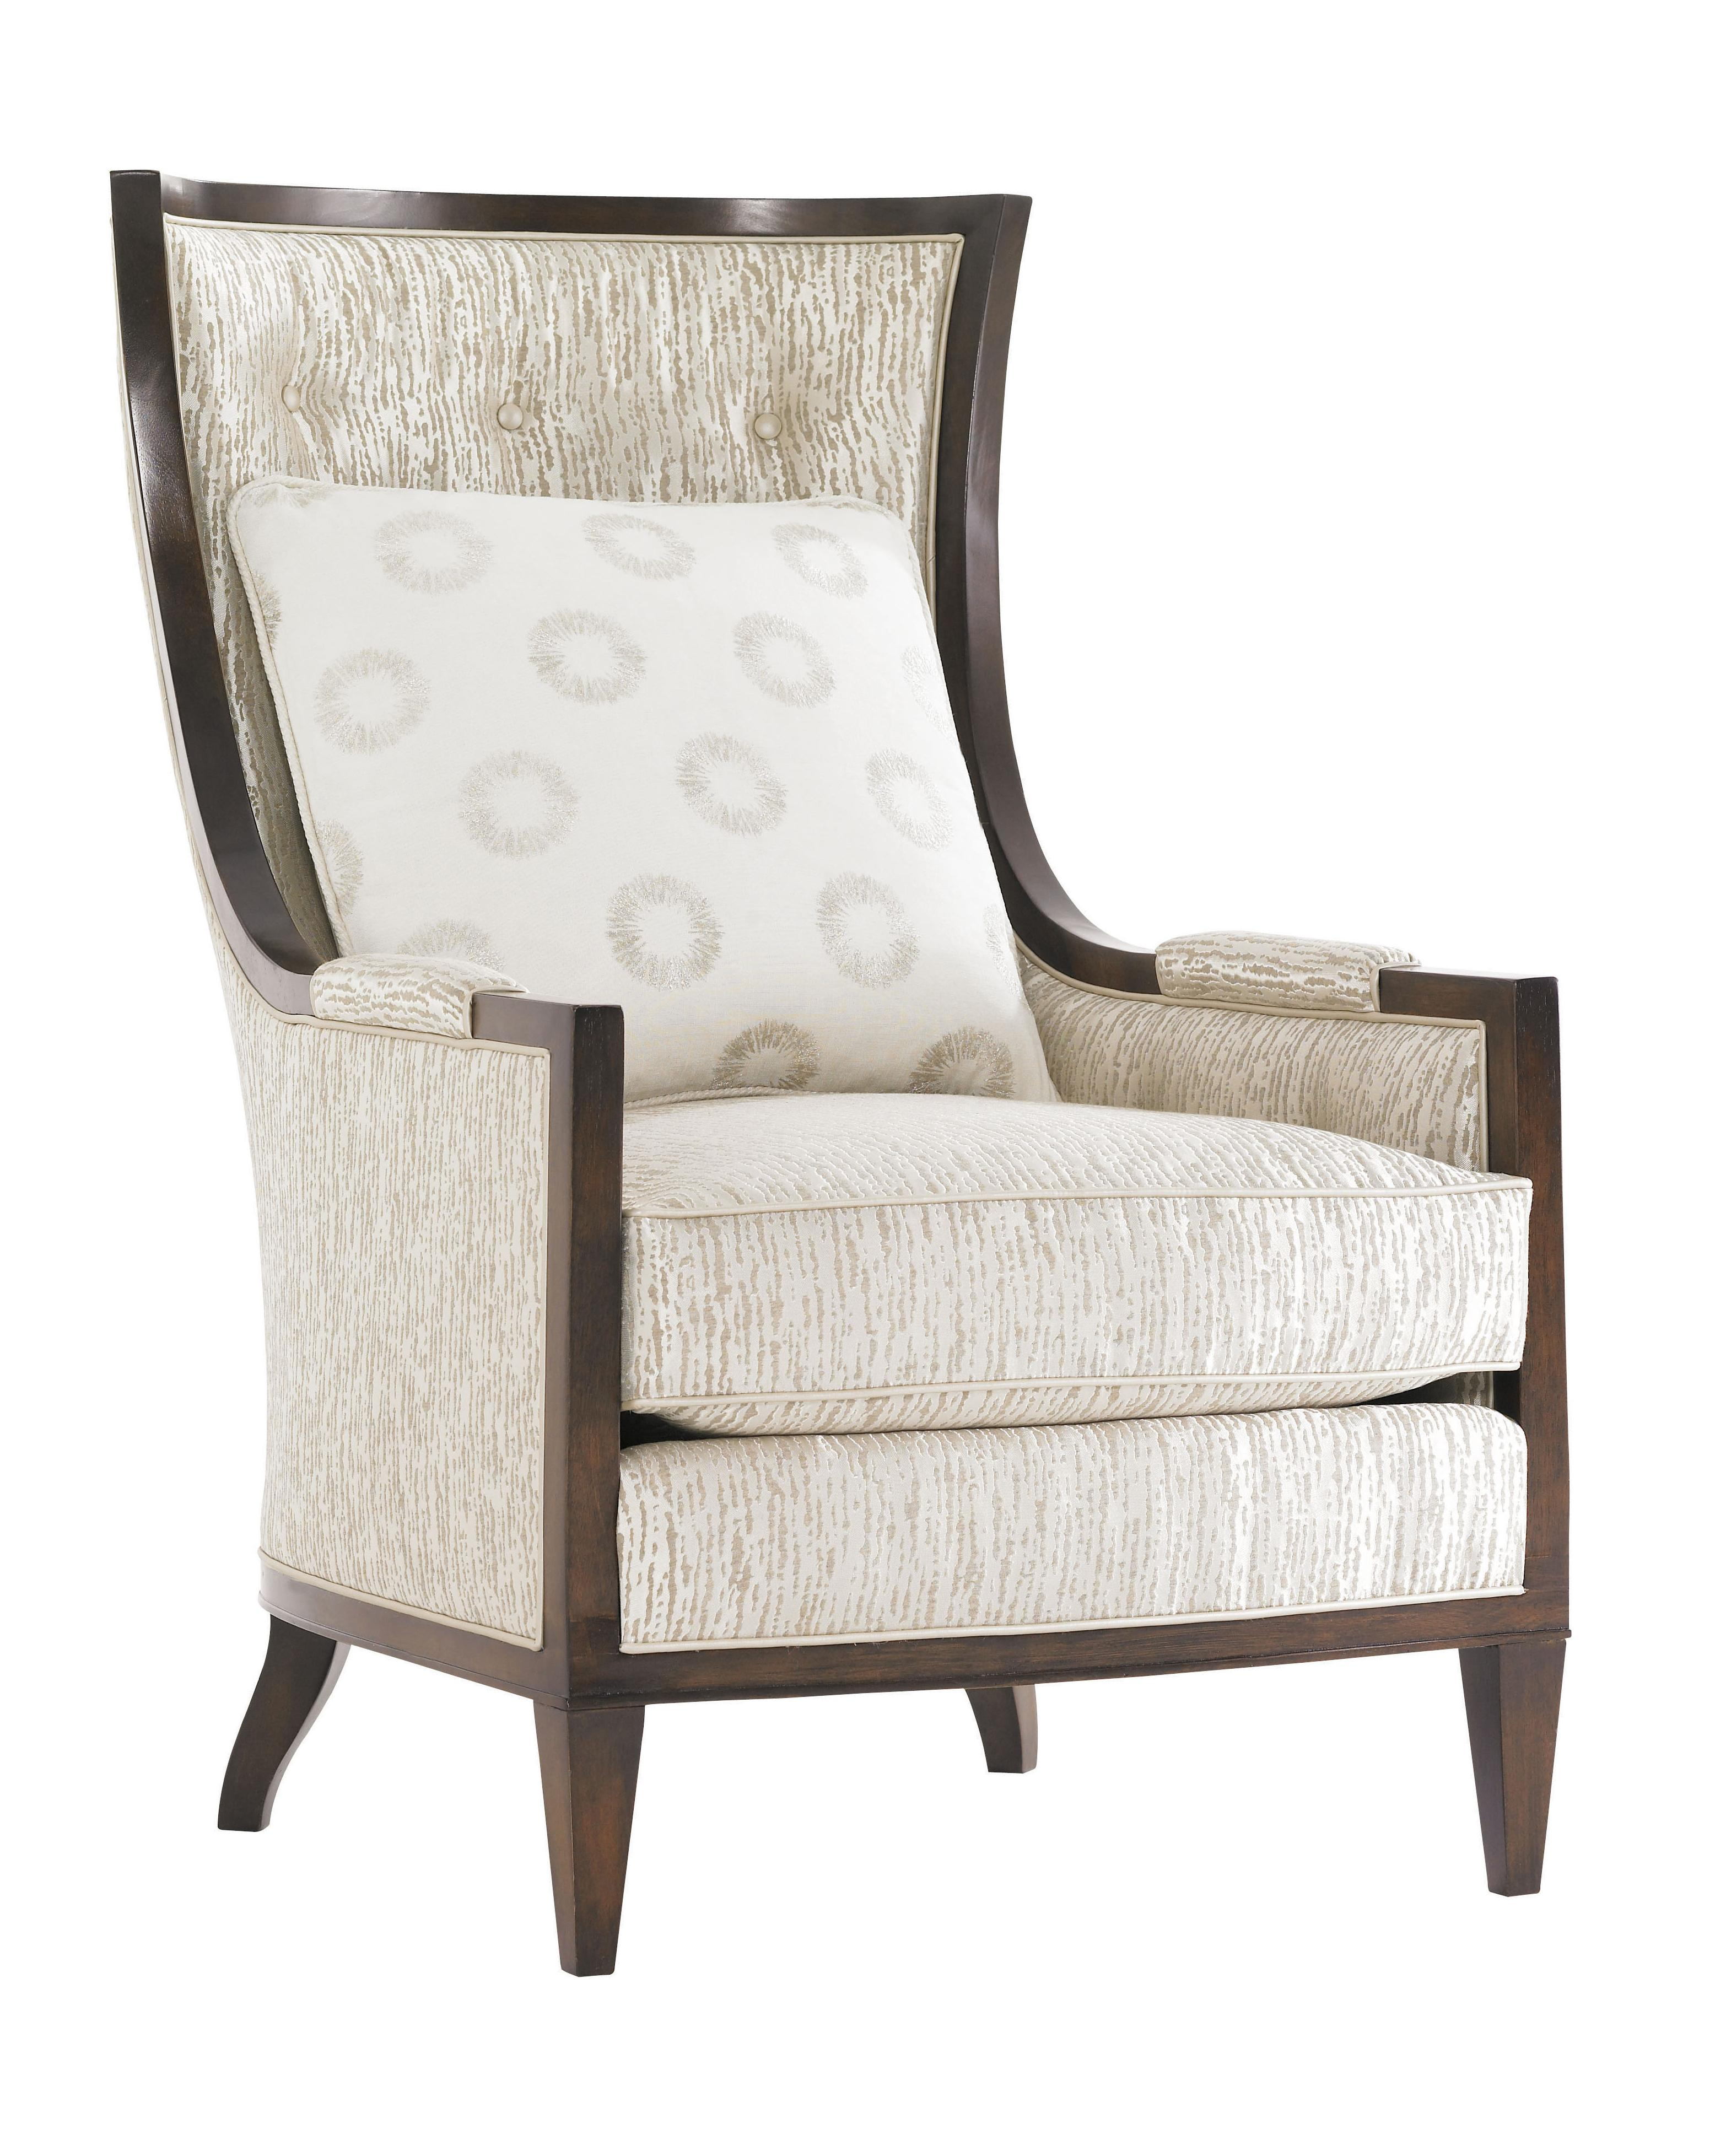 Lexington Tower Place Greenwood Chair - Item Number: 1597-11